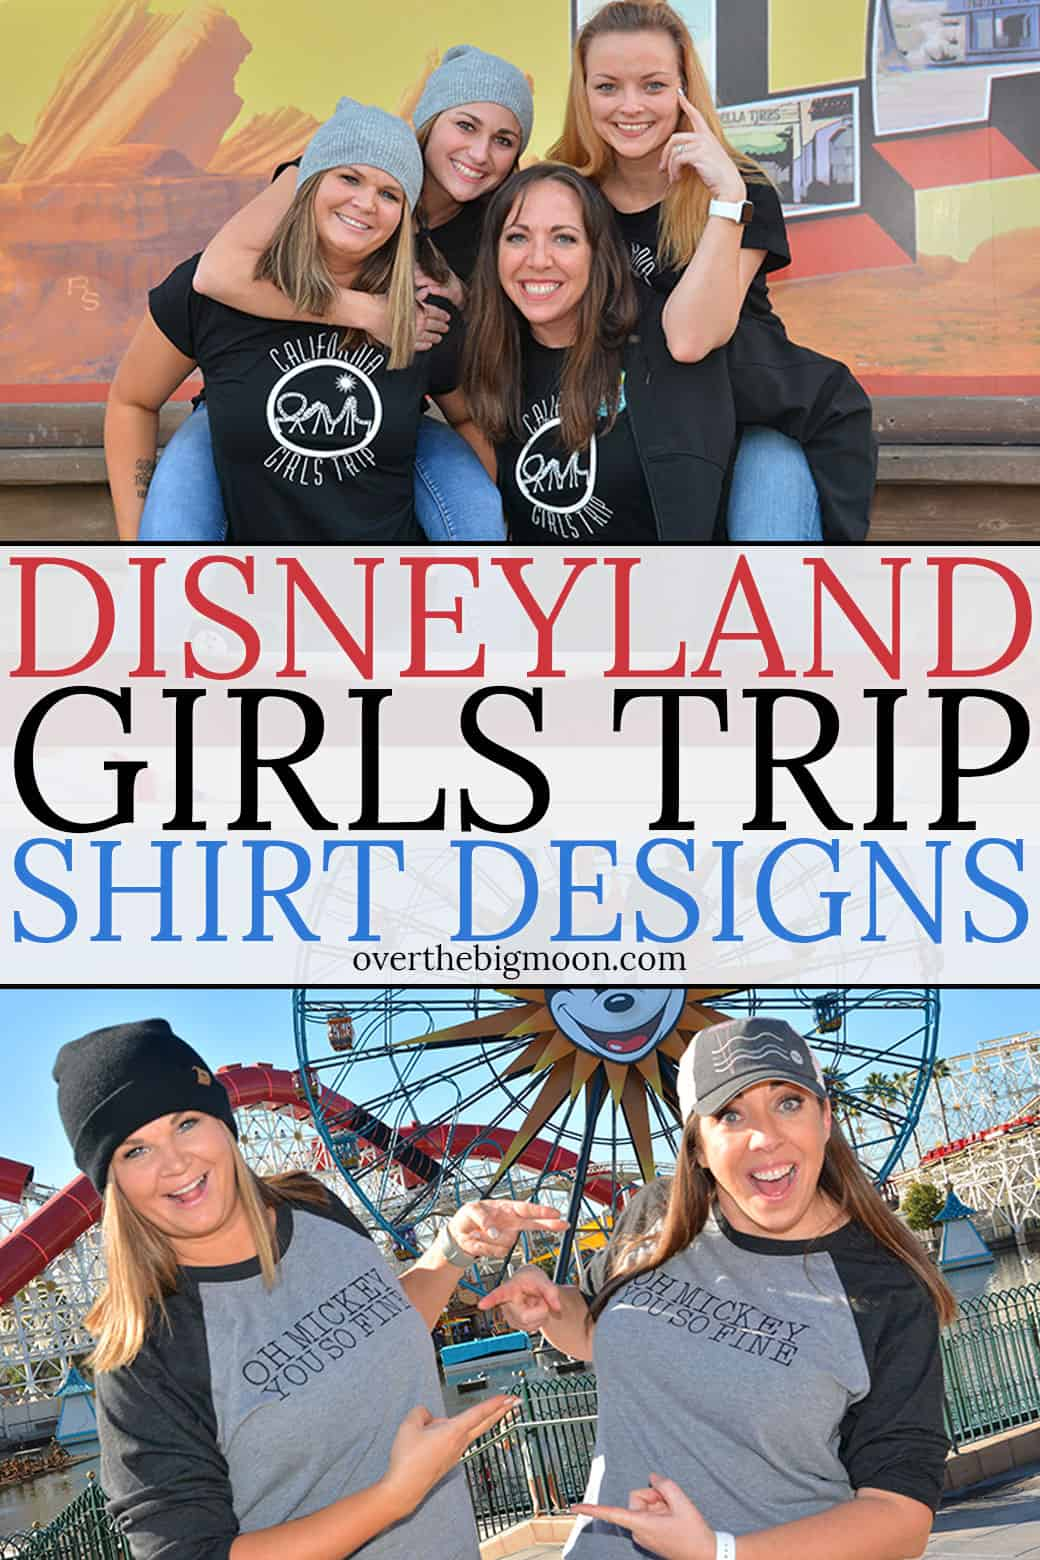 These Disneyland Shirt Designs are the perfect way to take your Disneyland trip to the next level! Four of the five designs work for Disney lovers of all ages and one design is perfect for when it's a Girls Trip! From overthebigmoon.com!